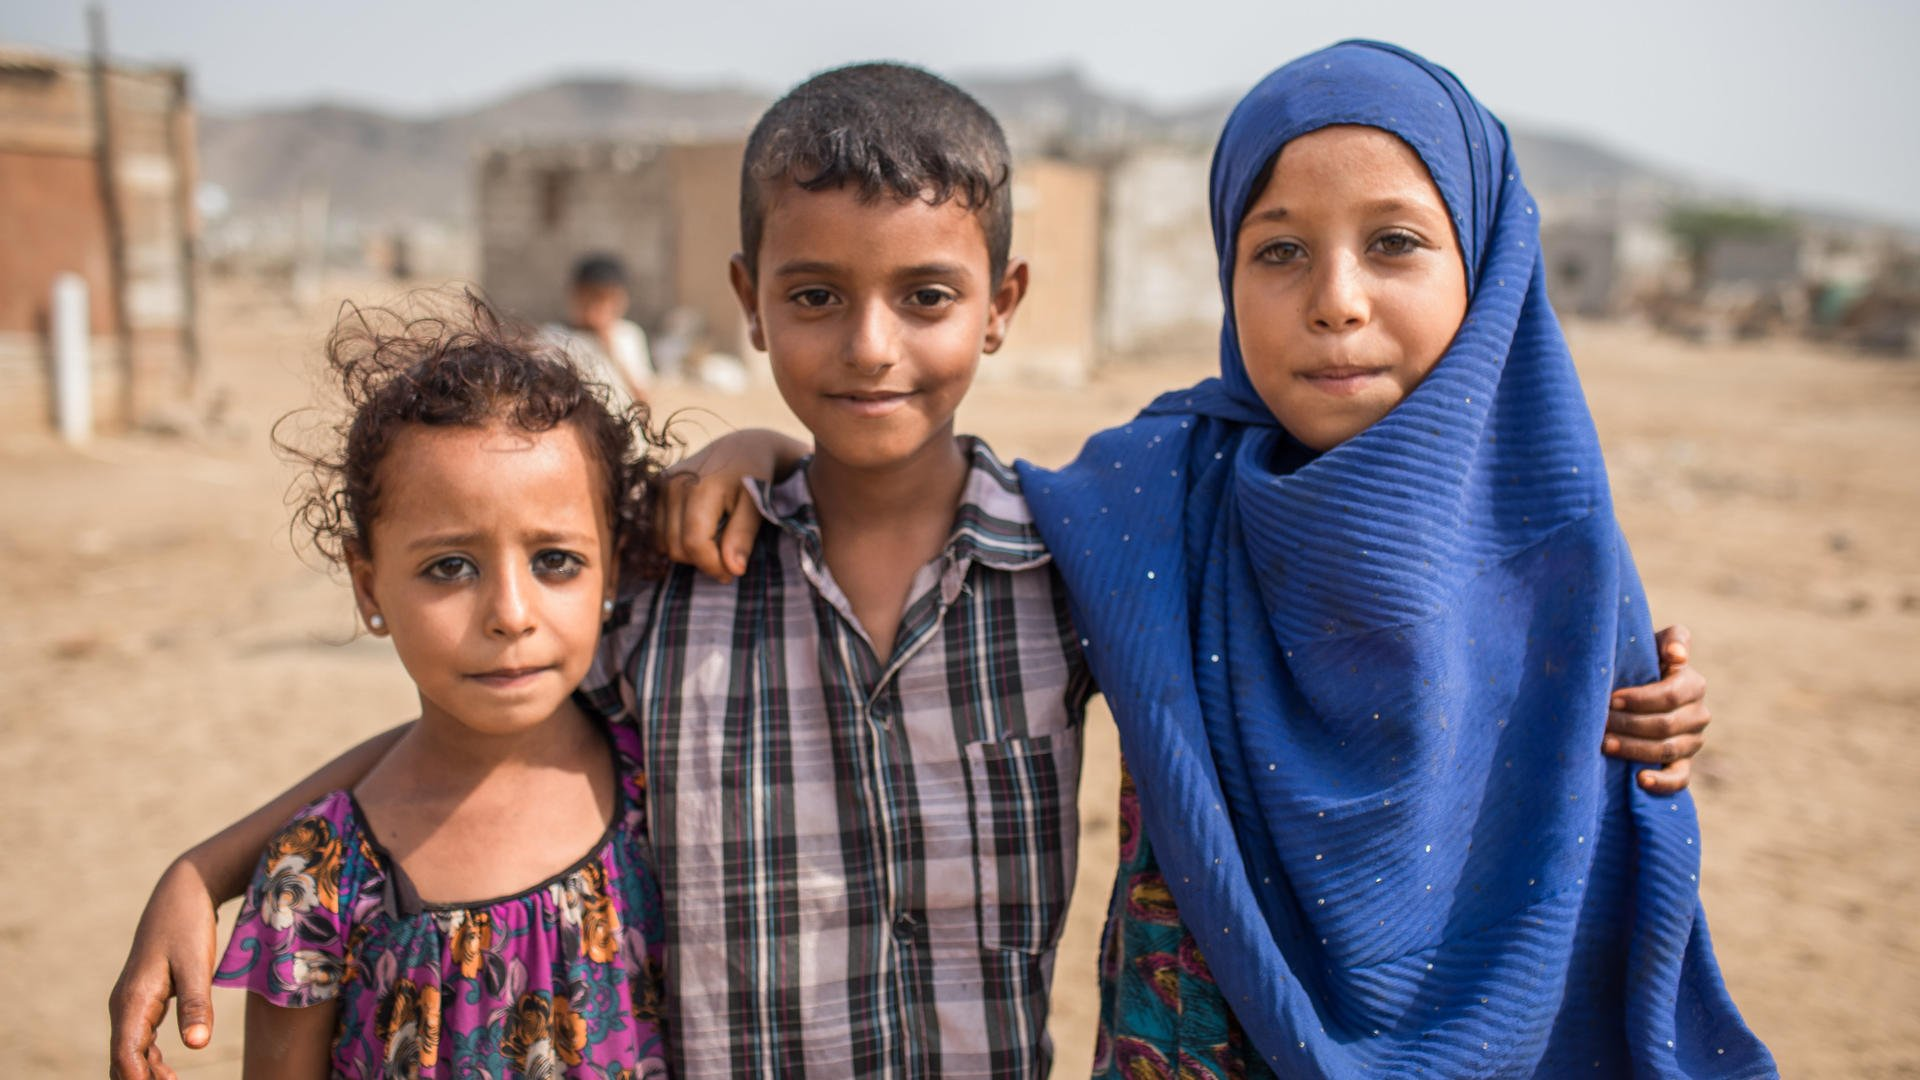 Three children in Yemen